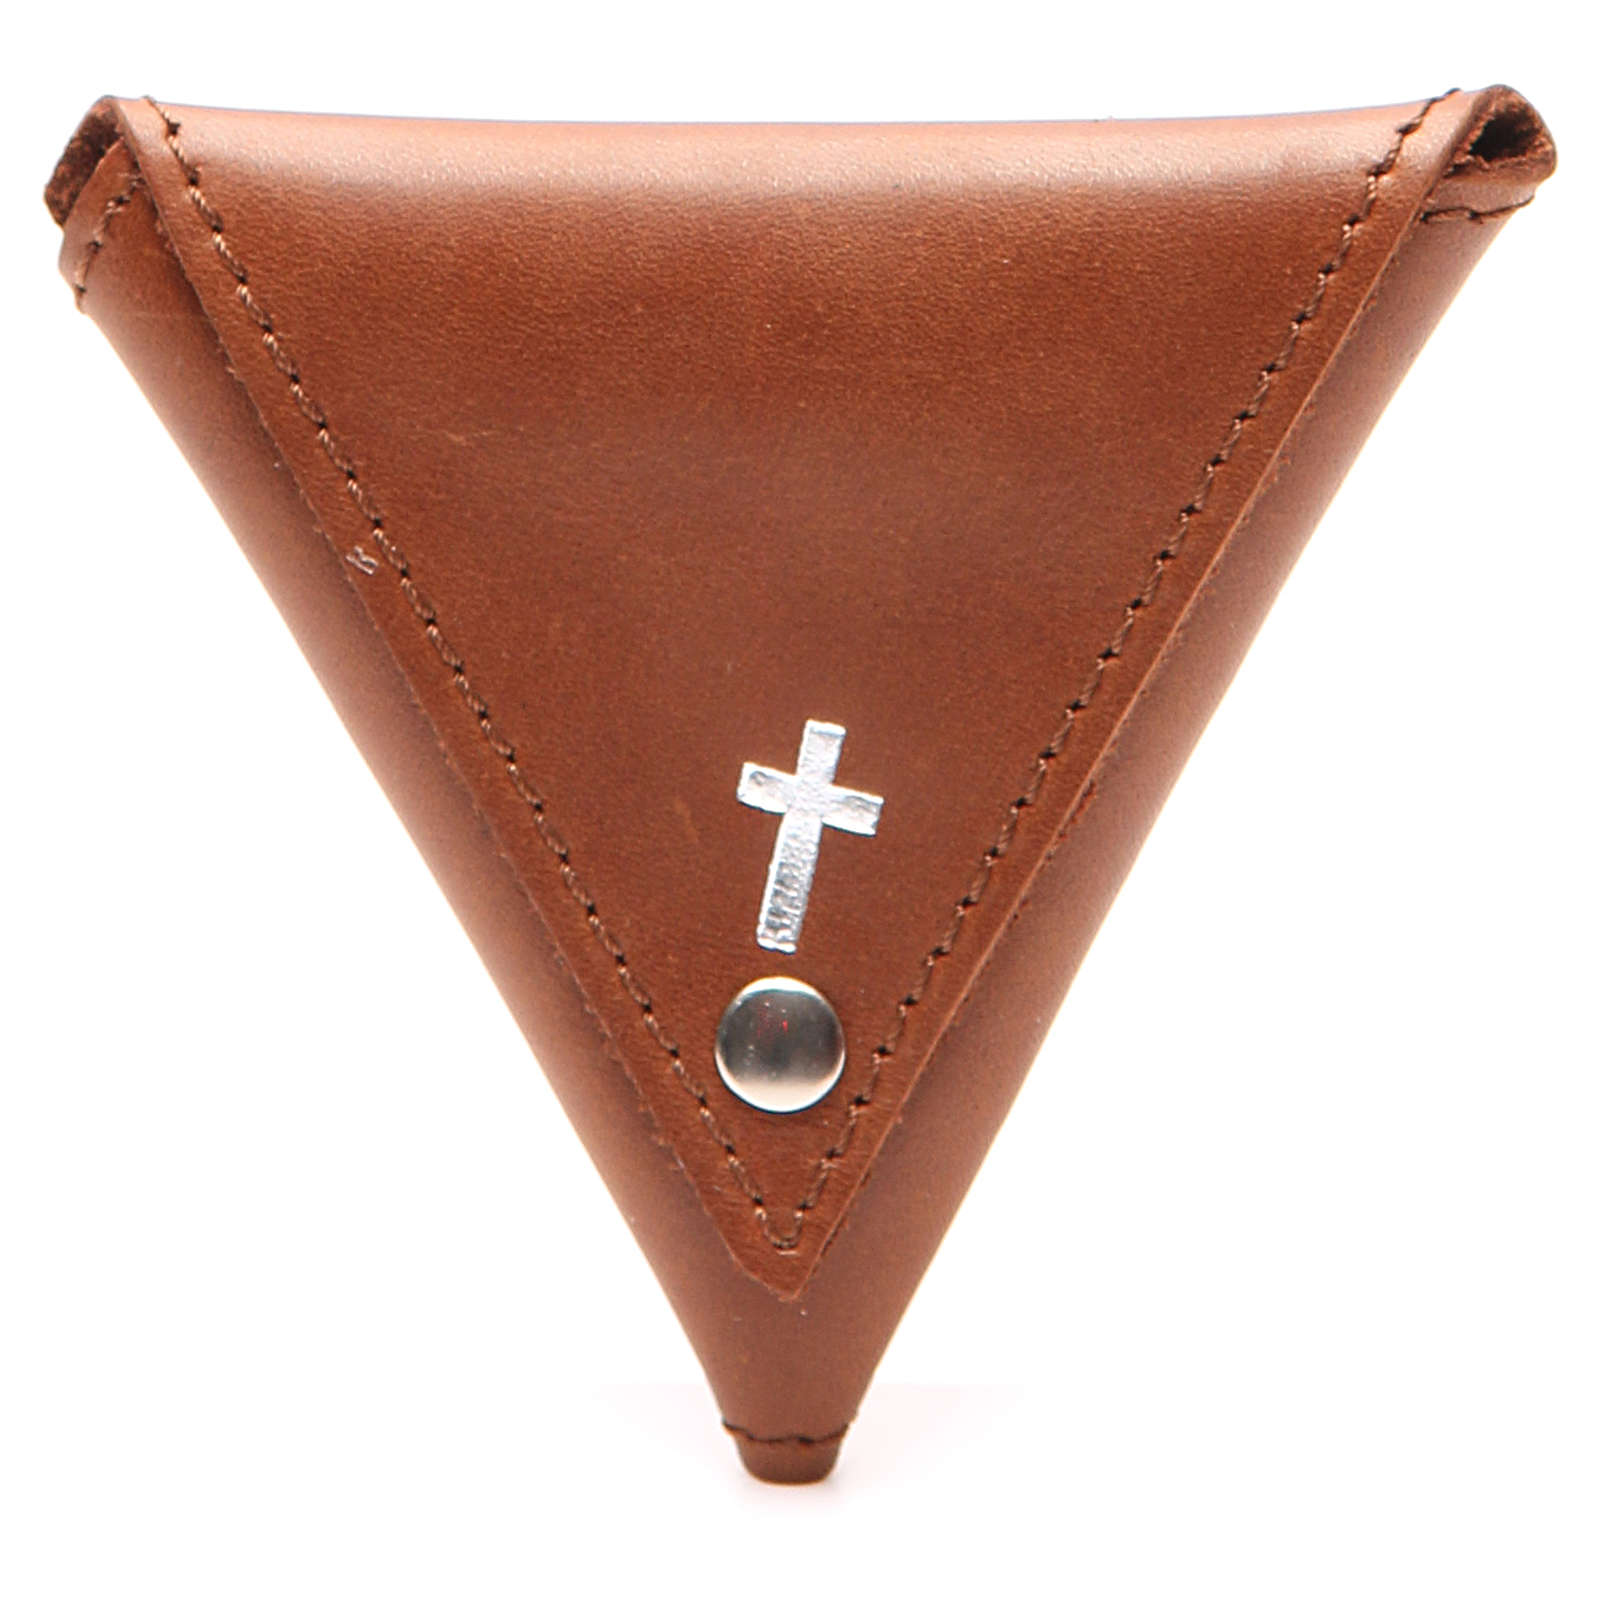 Rosary case, triangle shape in brown leather with cross 4